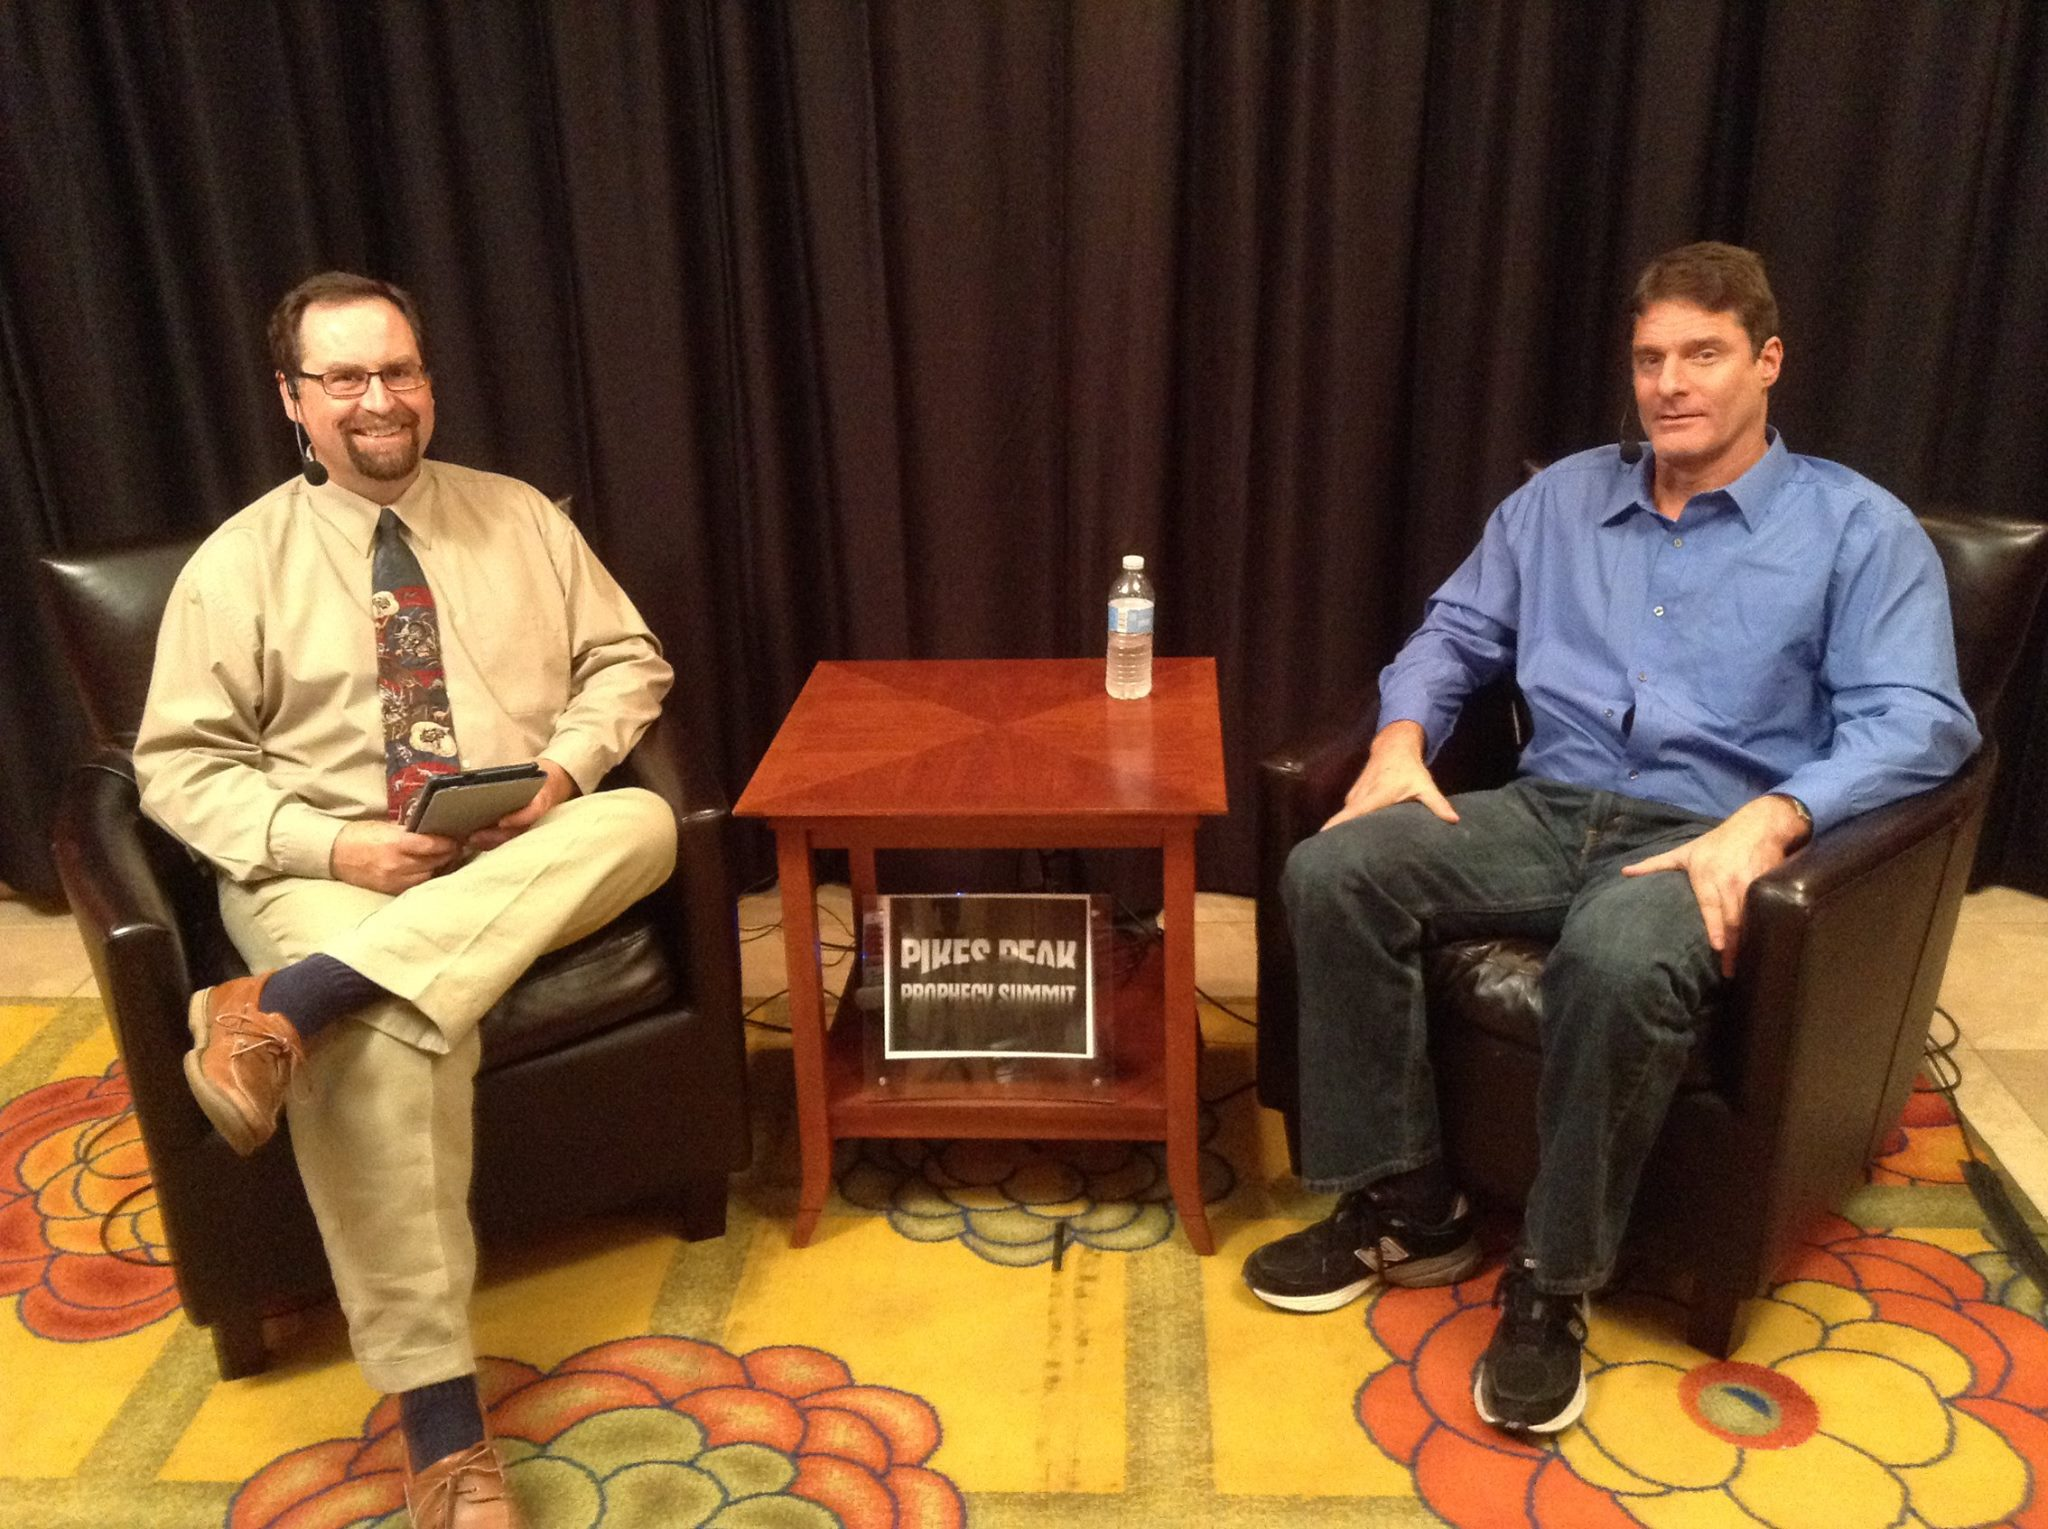 Derek Gilbert and Cris Putnam at the 2014 Pikes Peak Prophecy Summit